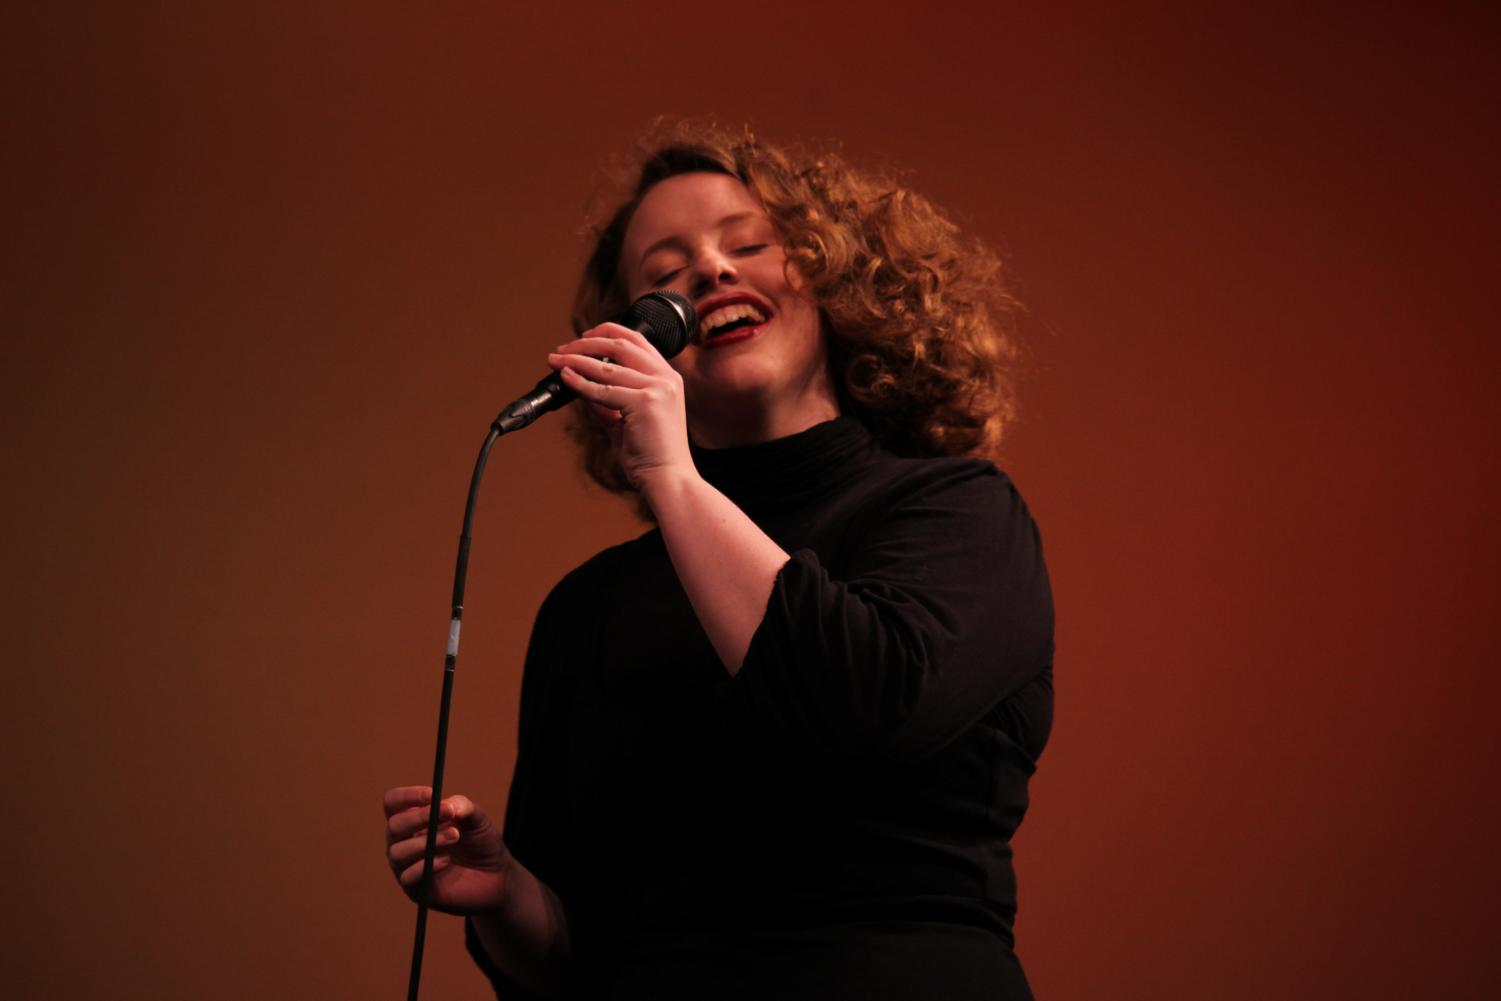 Cece+Herwig%2C+senior%2C+holds+the+microphone+while+she+hums+jazz+melodies.